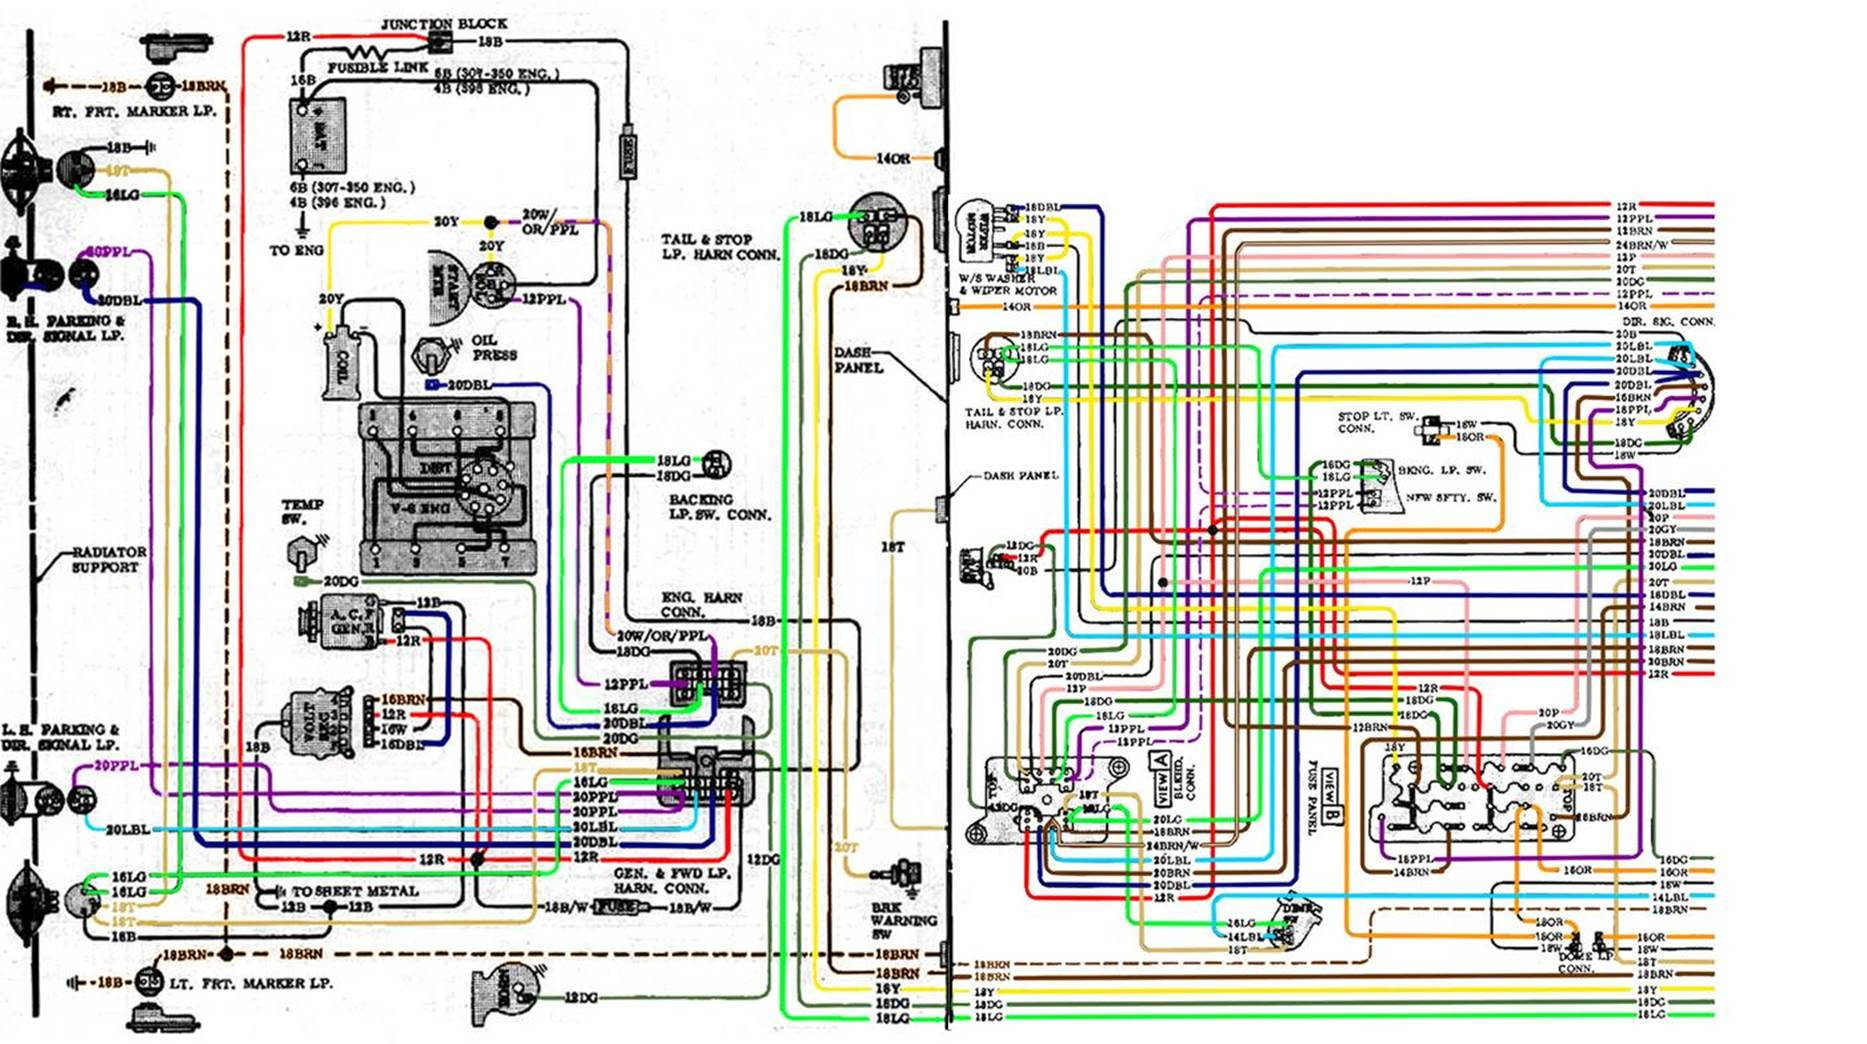 image002 67 72 chevy wiring diagram 72 nova wiring diagram at gsmx.co